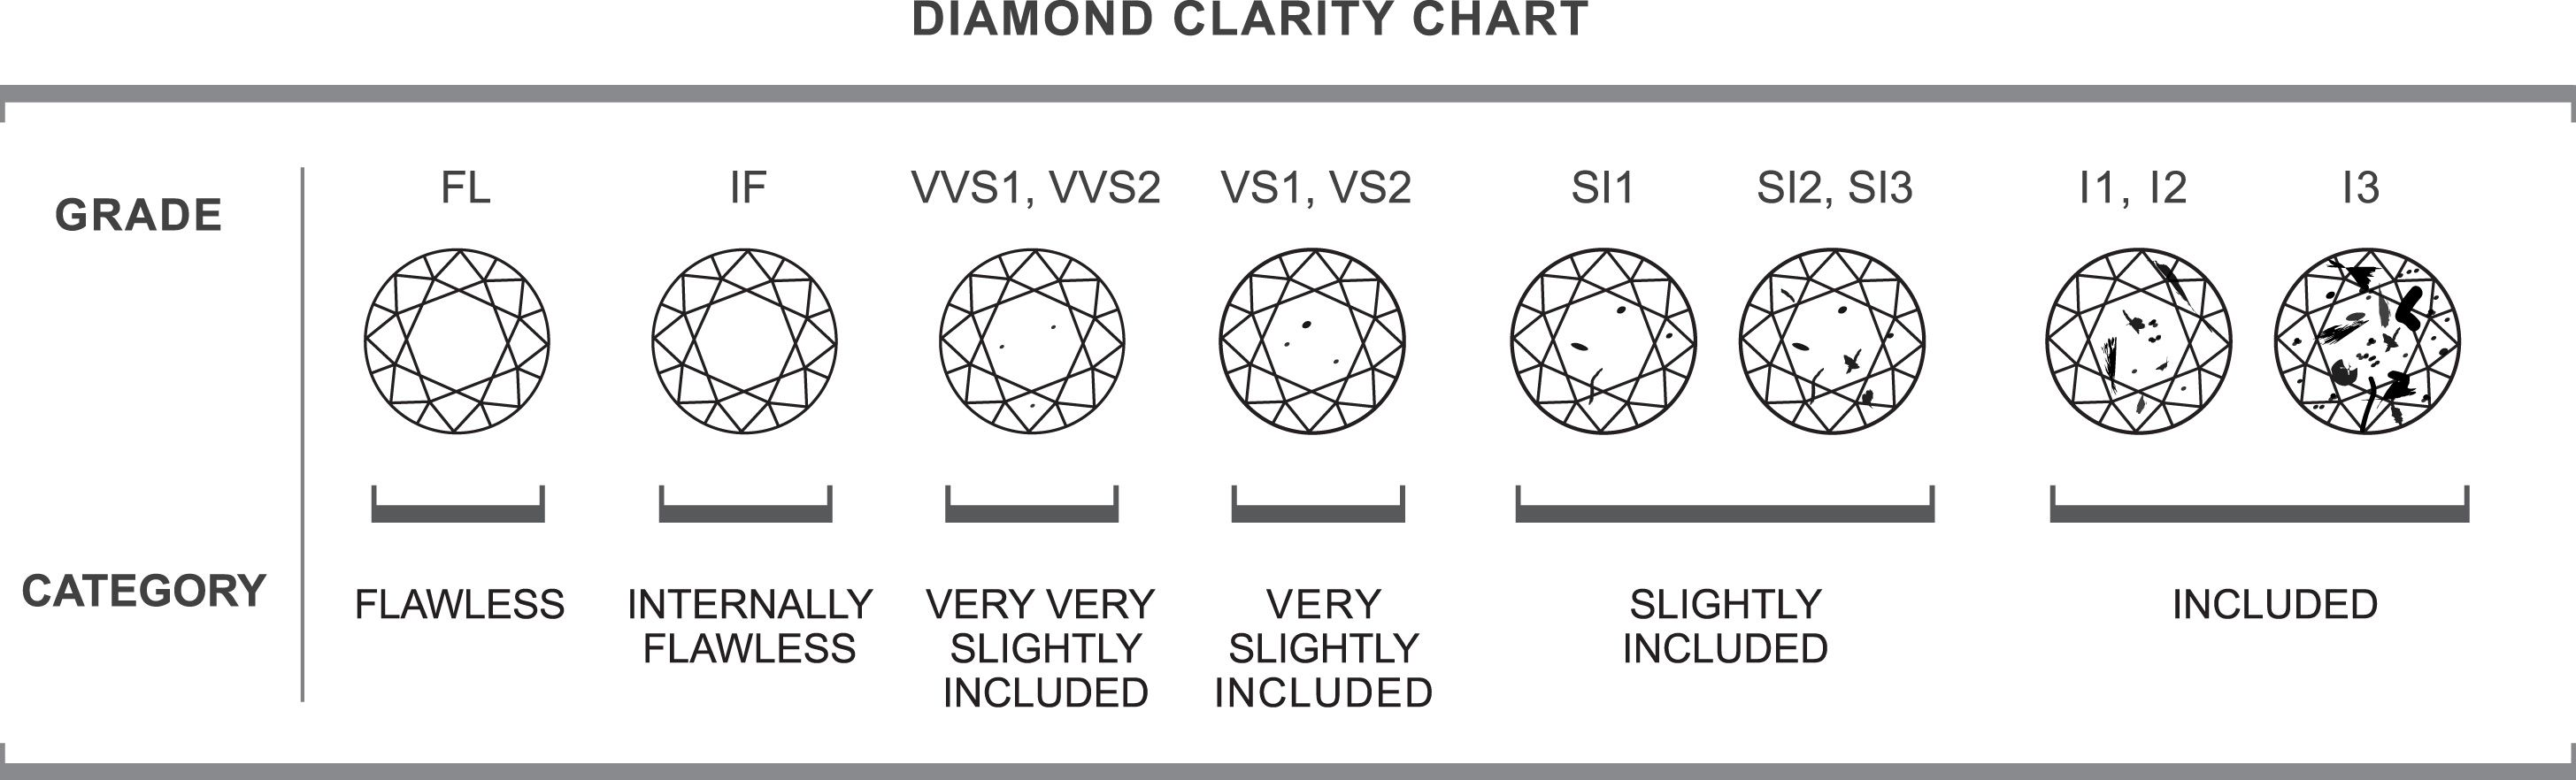 Diamond Clarity | Charts | Pinterest | Diamond clarity